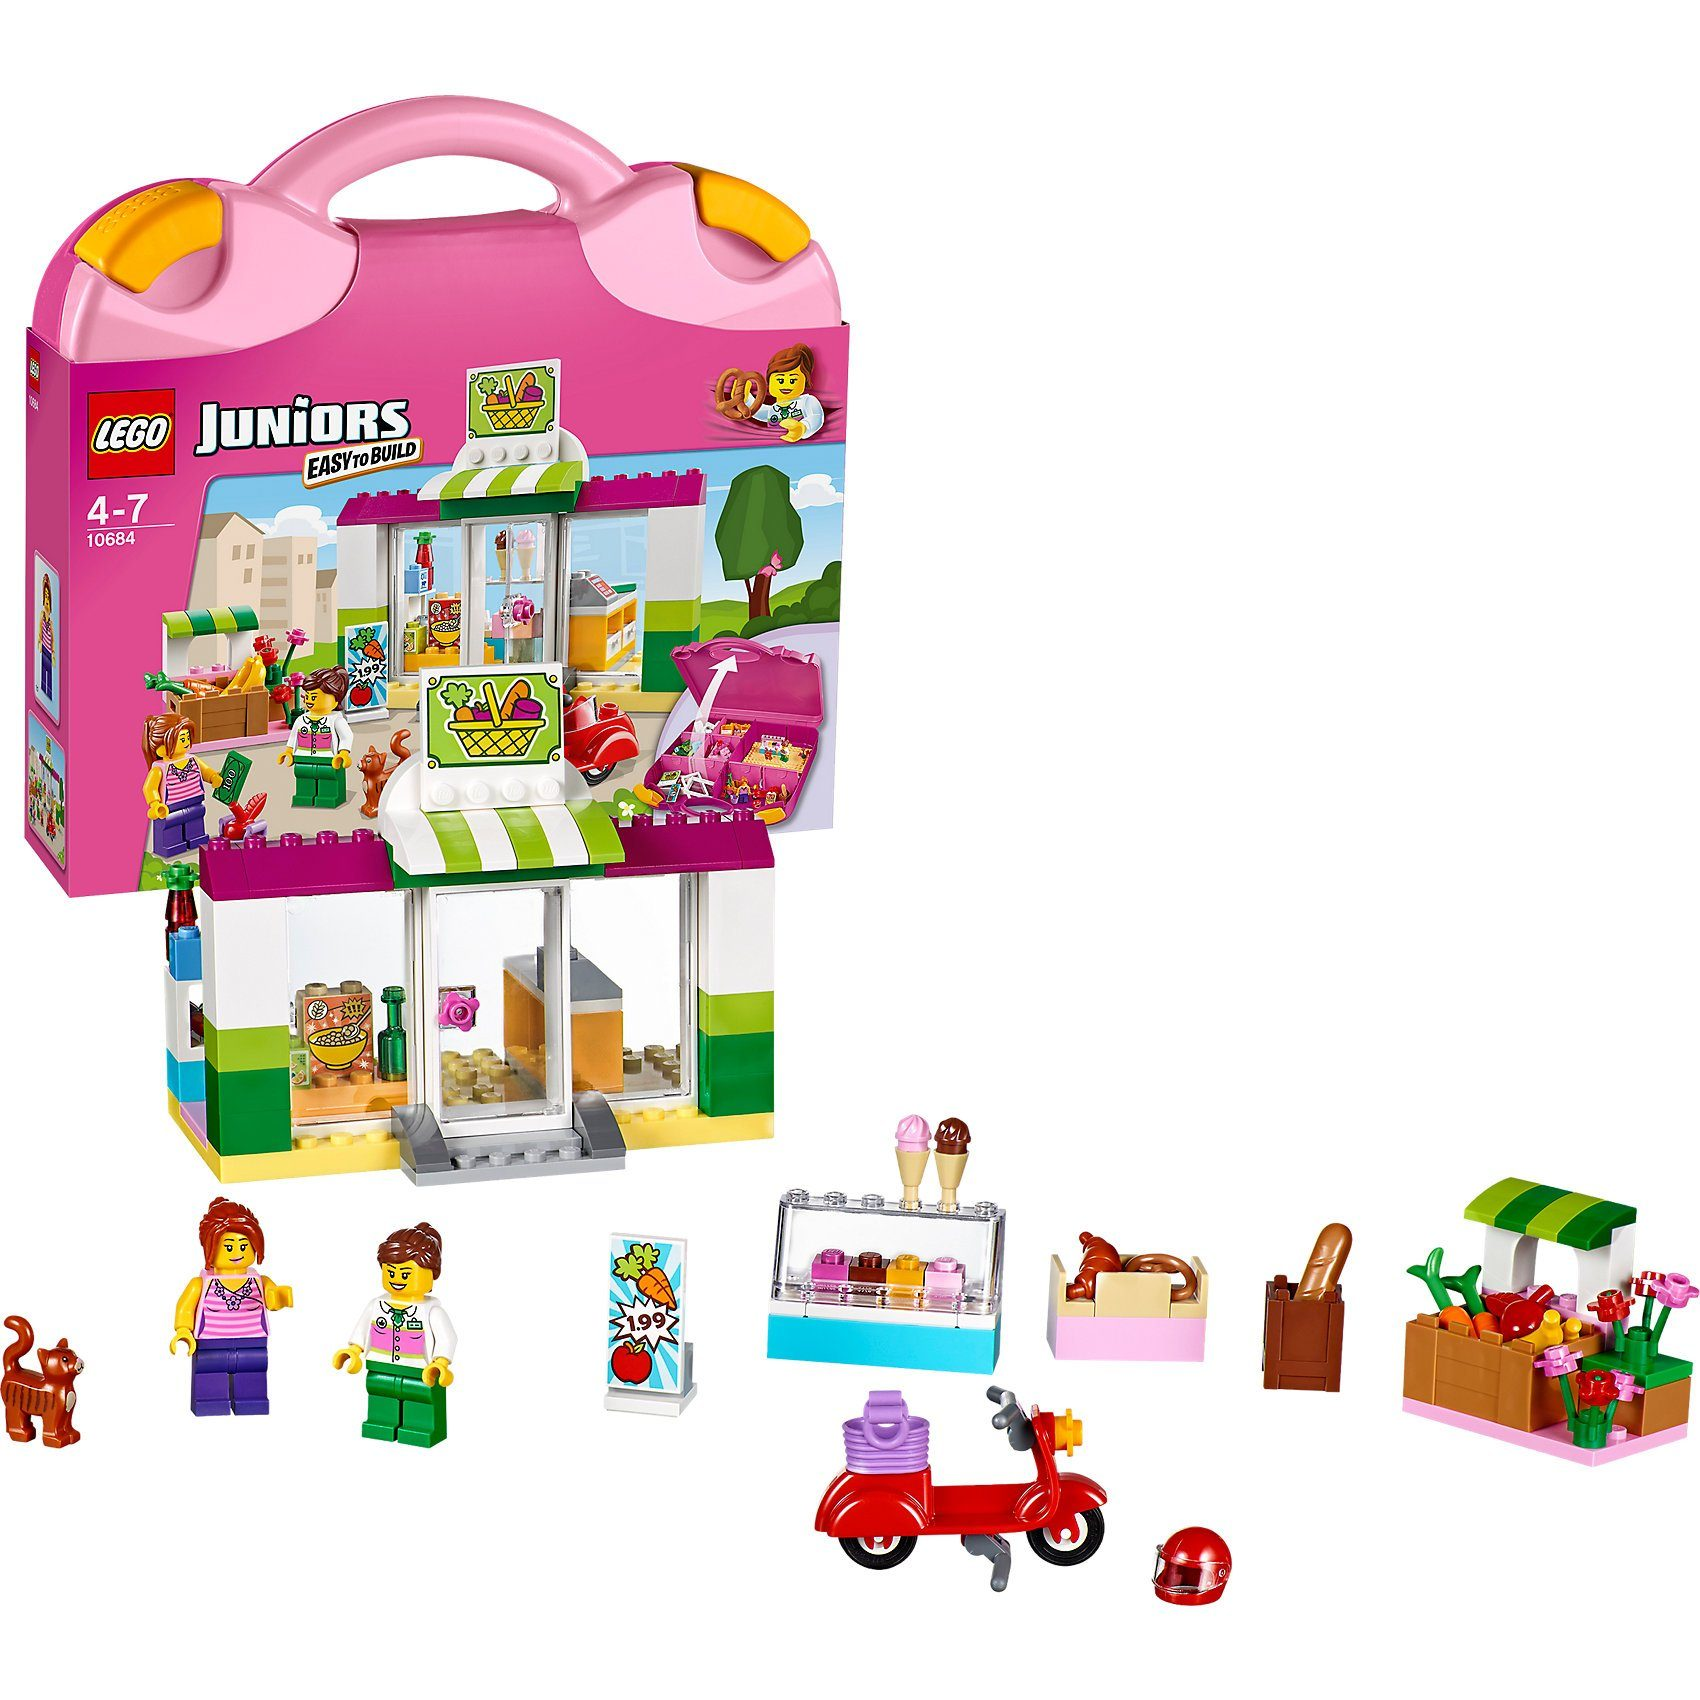 LEGO 10684 Juniors: Supermarkt-Koffer